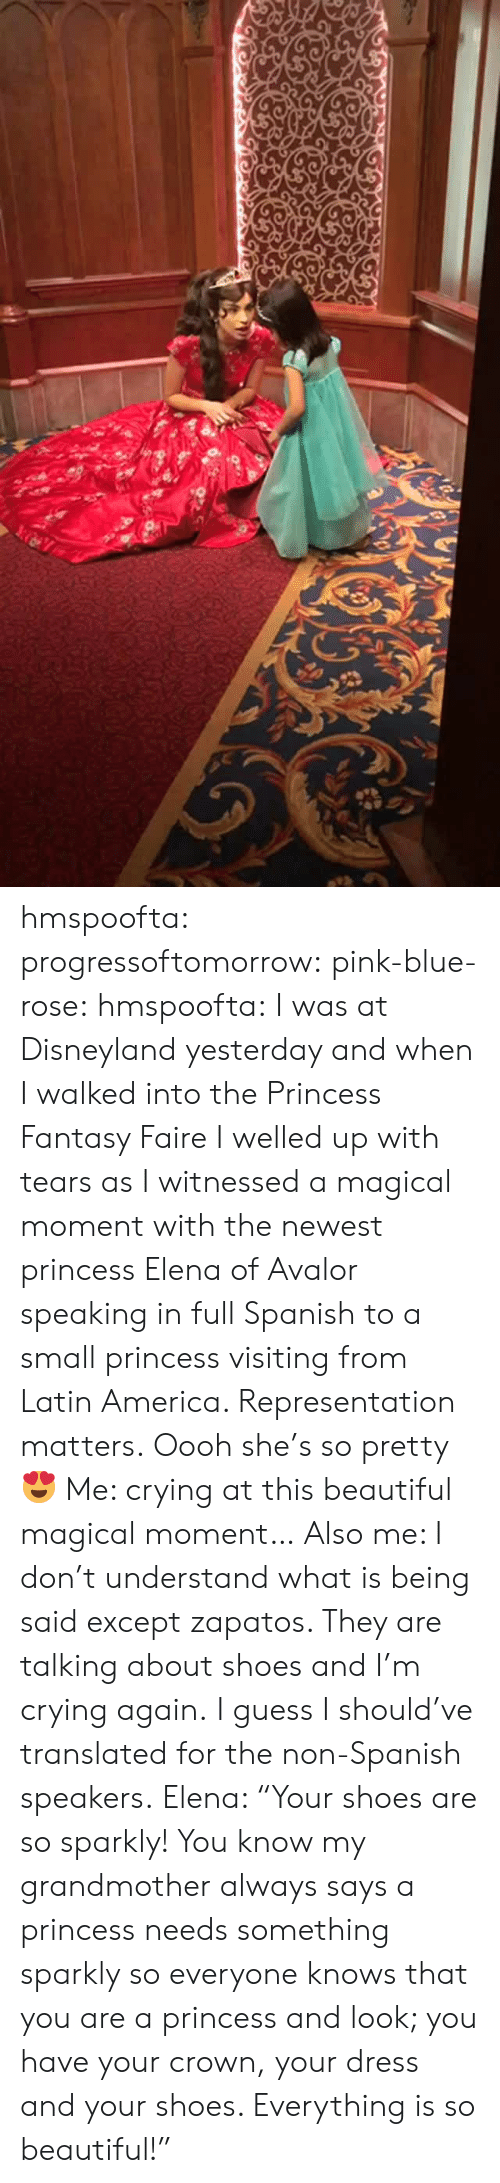 "America, Beautiful, and Crying: hmspoofta: progressoftomorrow:  pink-blue-rose:  hmspoofta:   I was at Disneyland yesterday and when I walked into the Princess Fantasy Faire I welled up with tears as I  witnessed a magical moment with the newest princess Elena of Avalor speaking in full Spanish to a small princess visiting from Latin America.   Representation matters.   Oooh she's so pretty 😍  Me: crying at this beautiful magical moment… Also me: I don't understand what is being said except zapatos. They are talking about shoes and I'm crying again.  I guess I should've translated for the non-Spanish speakers.  Elena: ""Your shoes are so sparkly! You know my grandmother always says a princess needs something sparkly so everyone knows that you are a princess and look; you have your crown, your dress and your shoes. Everything is so beautiful!"""